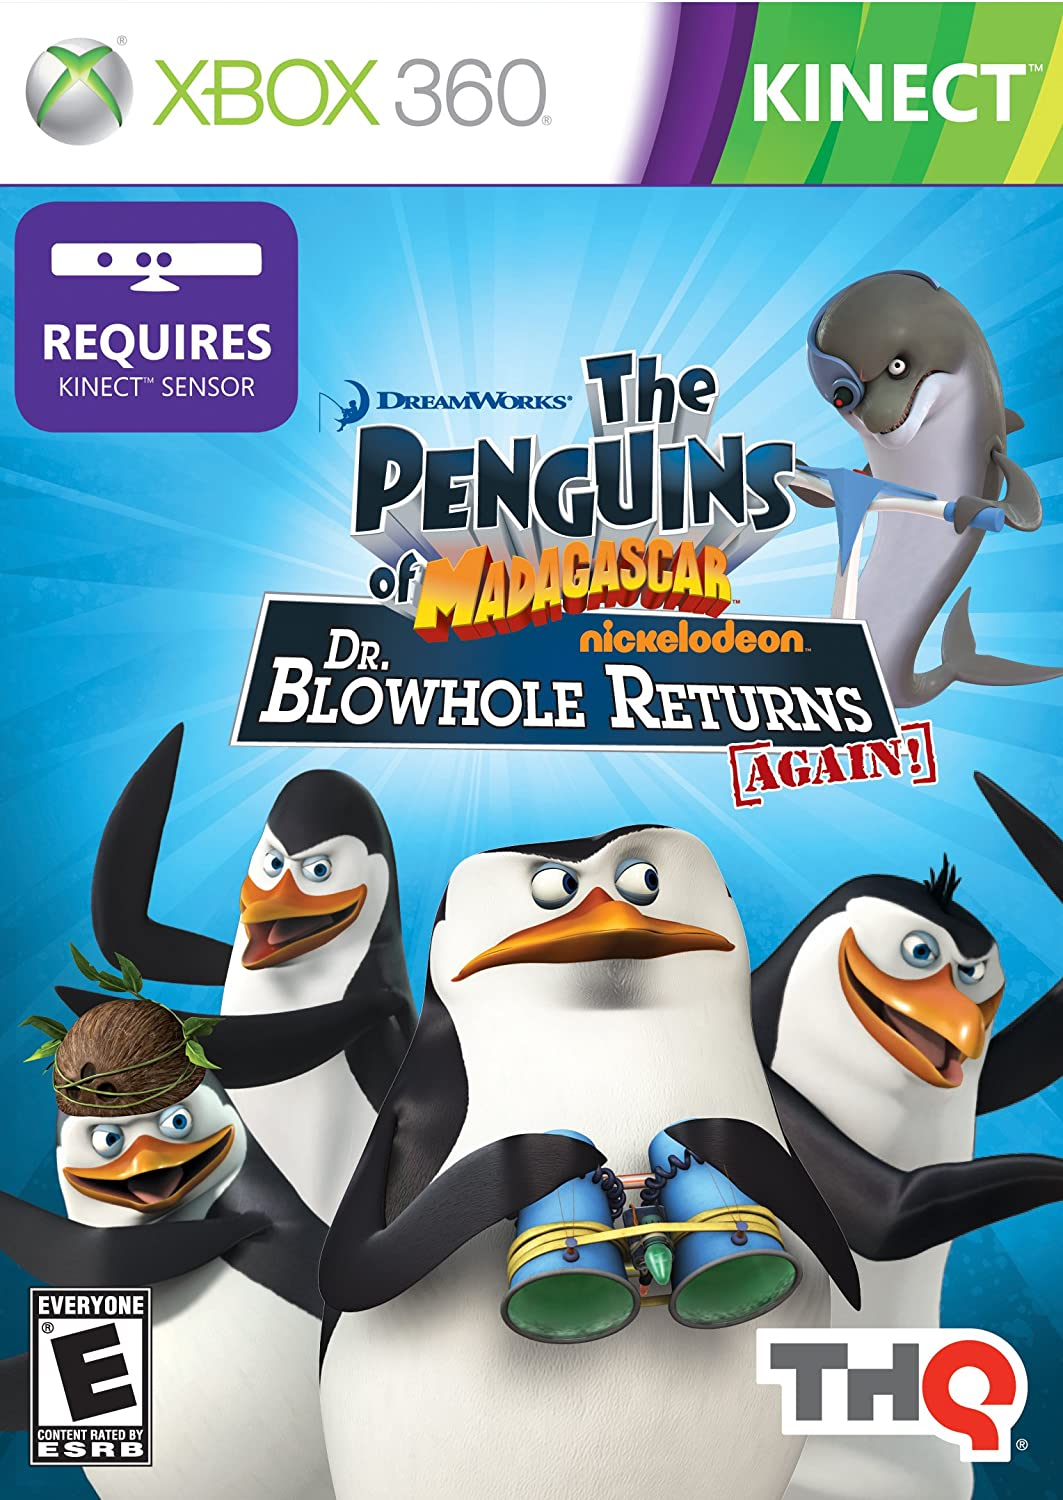 Amazoncom Penguins of Madagascar Dr Blowhole Returns Again